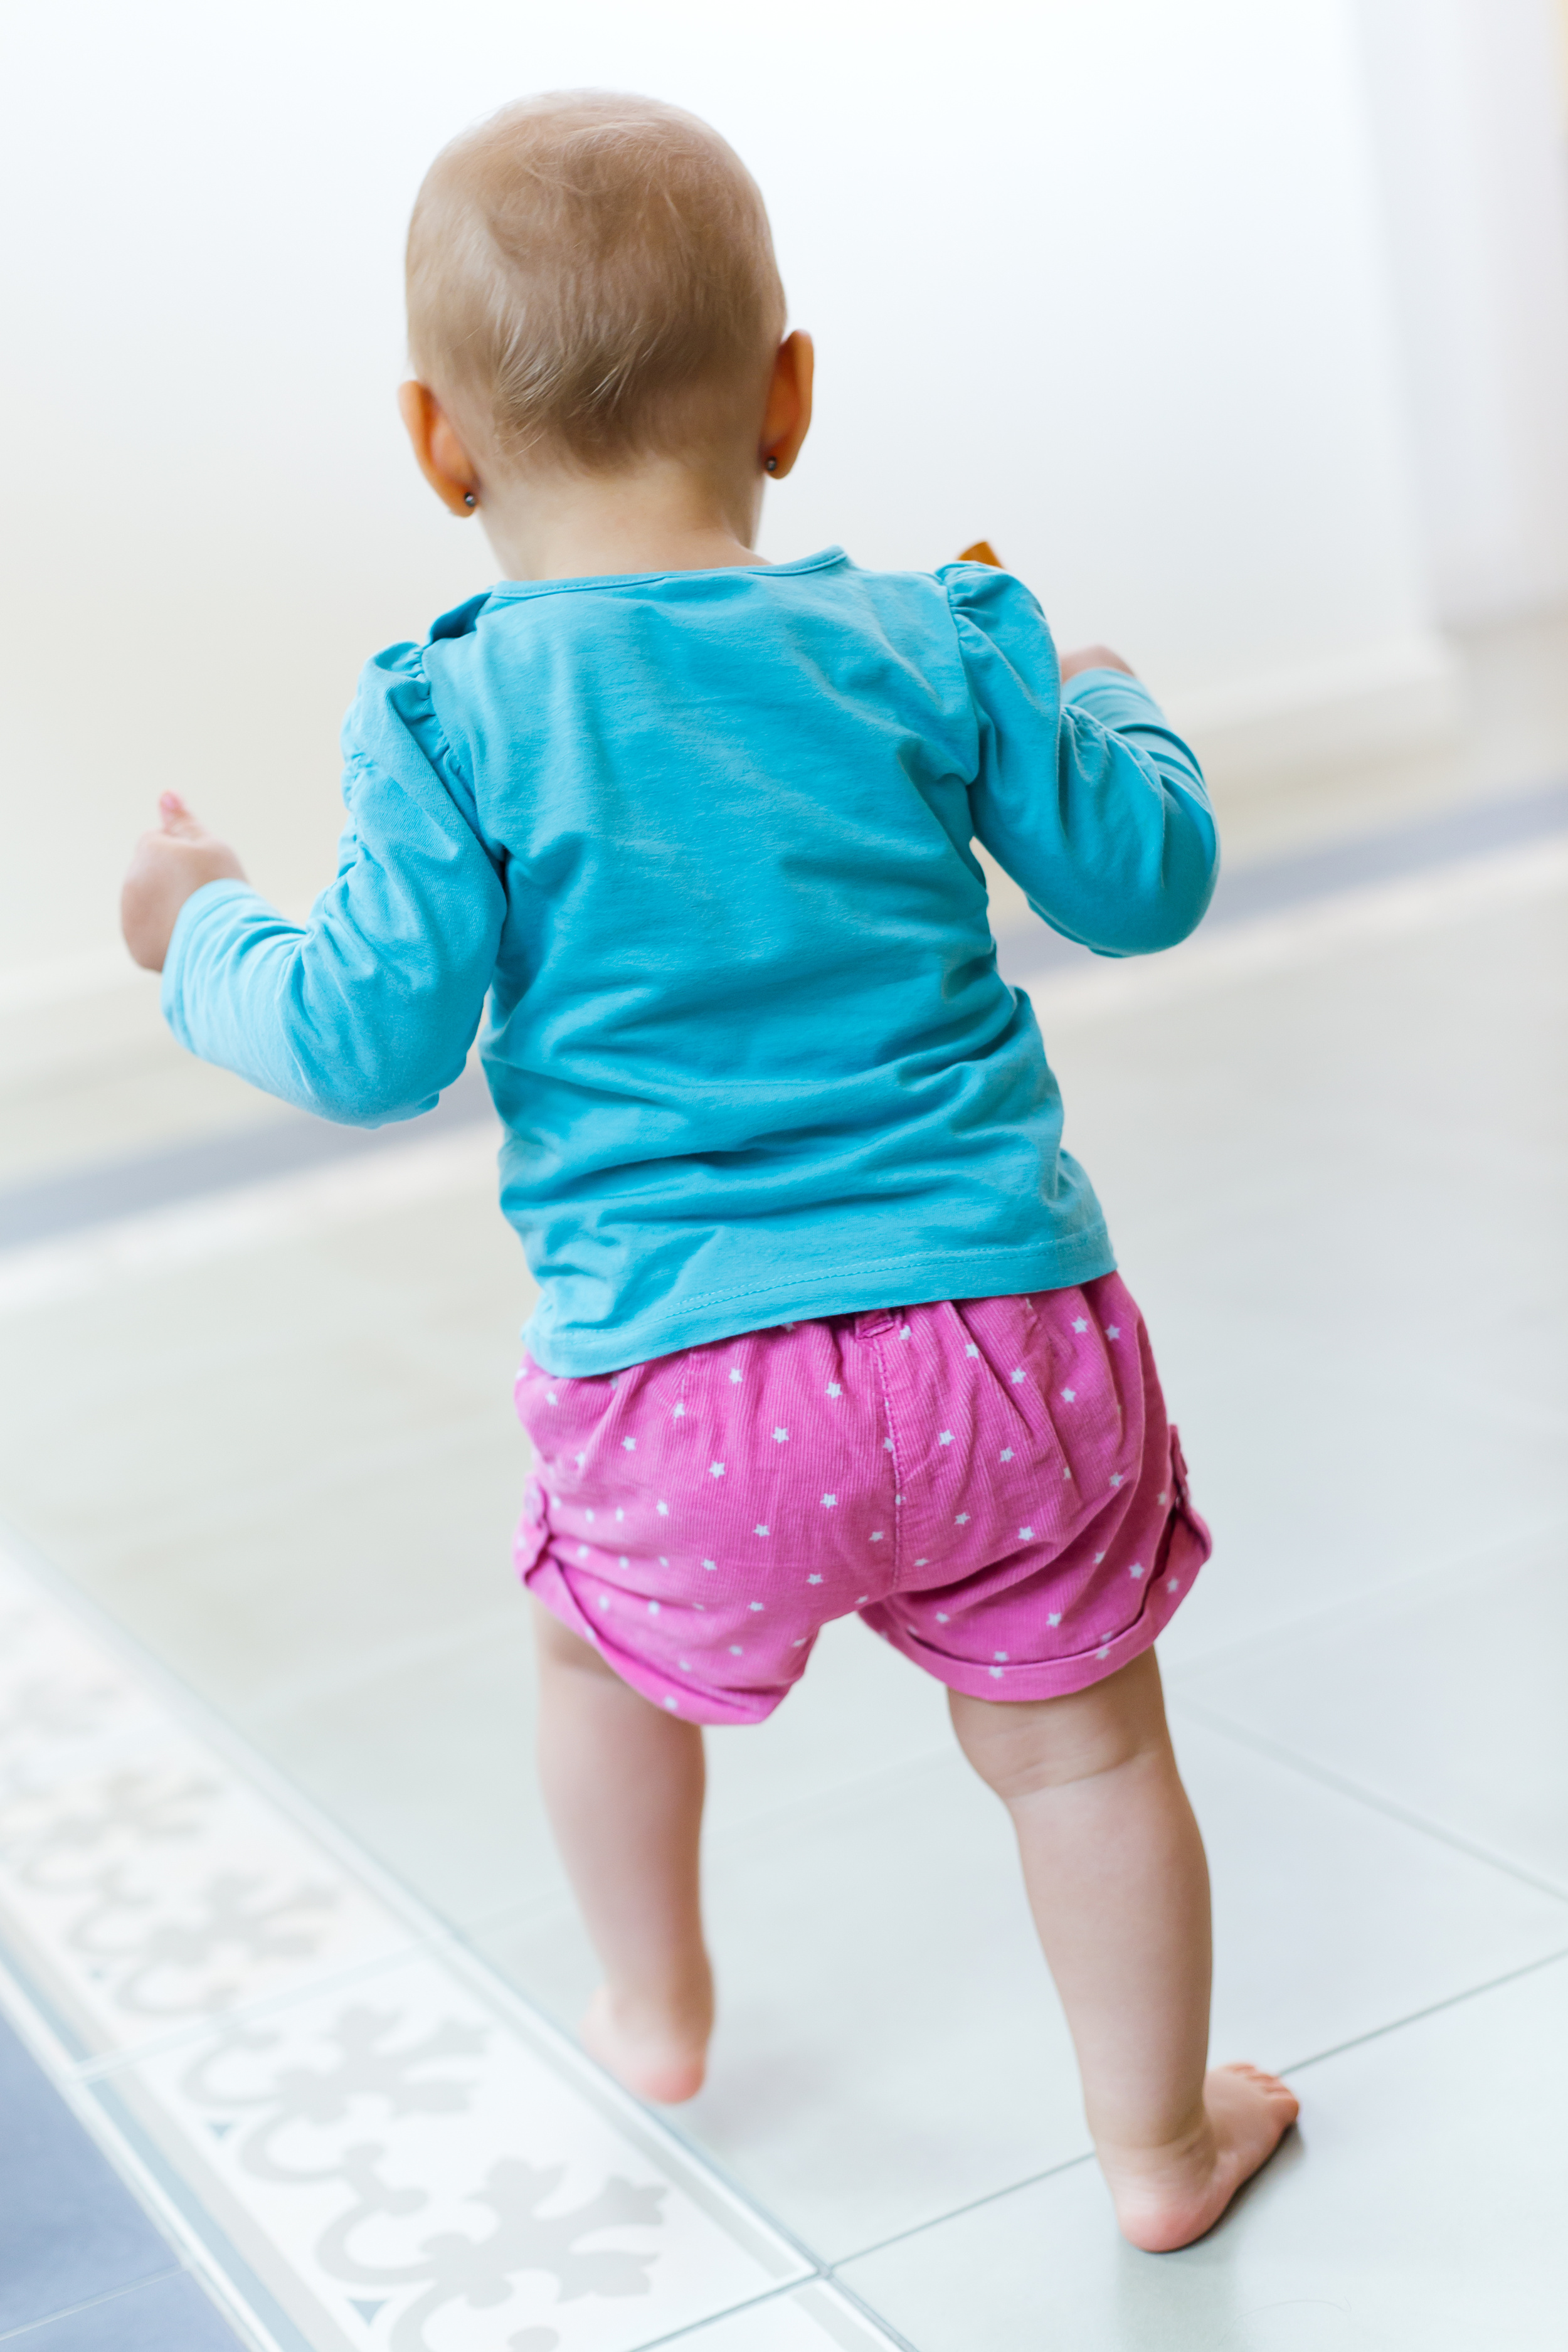 Proofed baby safety tips for new walkers and childproofing advice